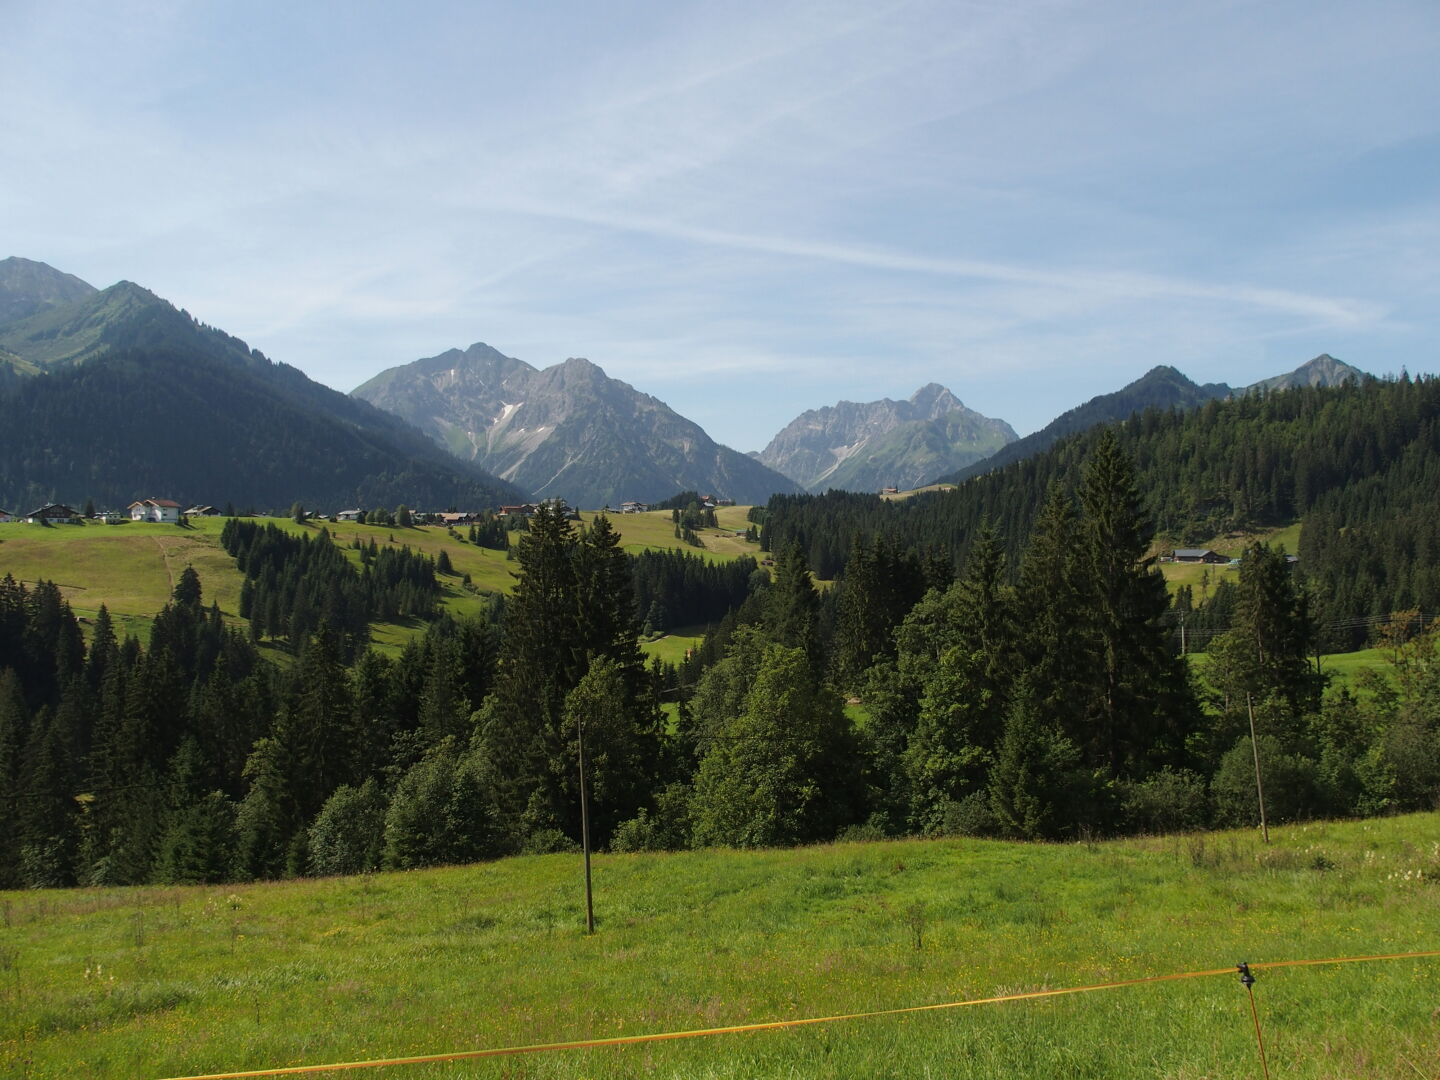 Hiking in the Kleinwalsertal on the border between Austria and Germany. The weather forecast predicts 35 degrees and no rain.